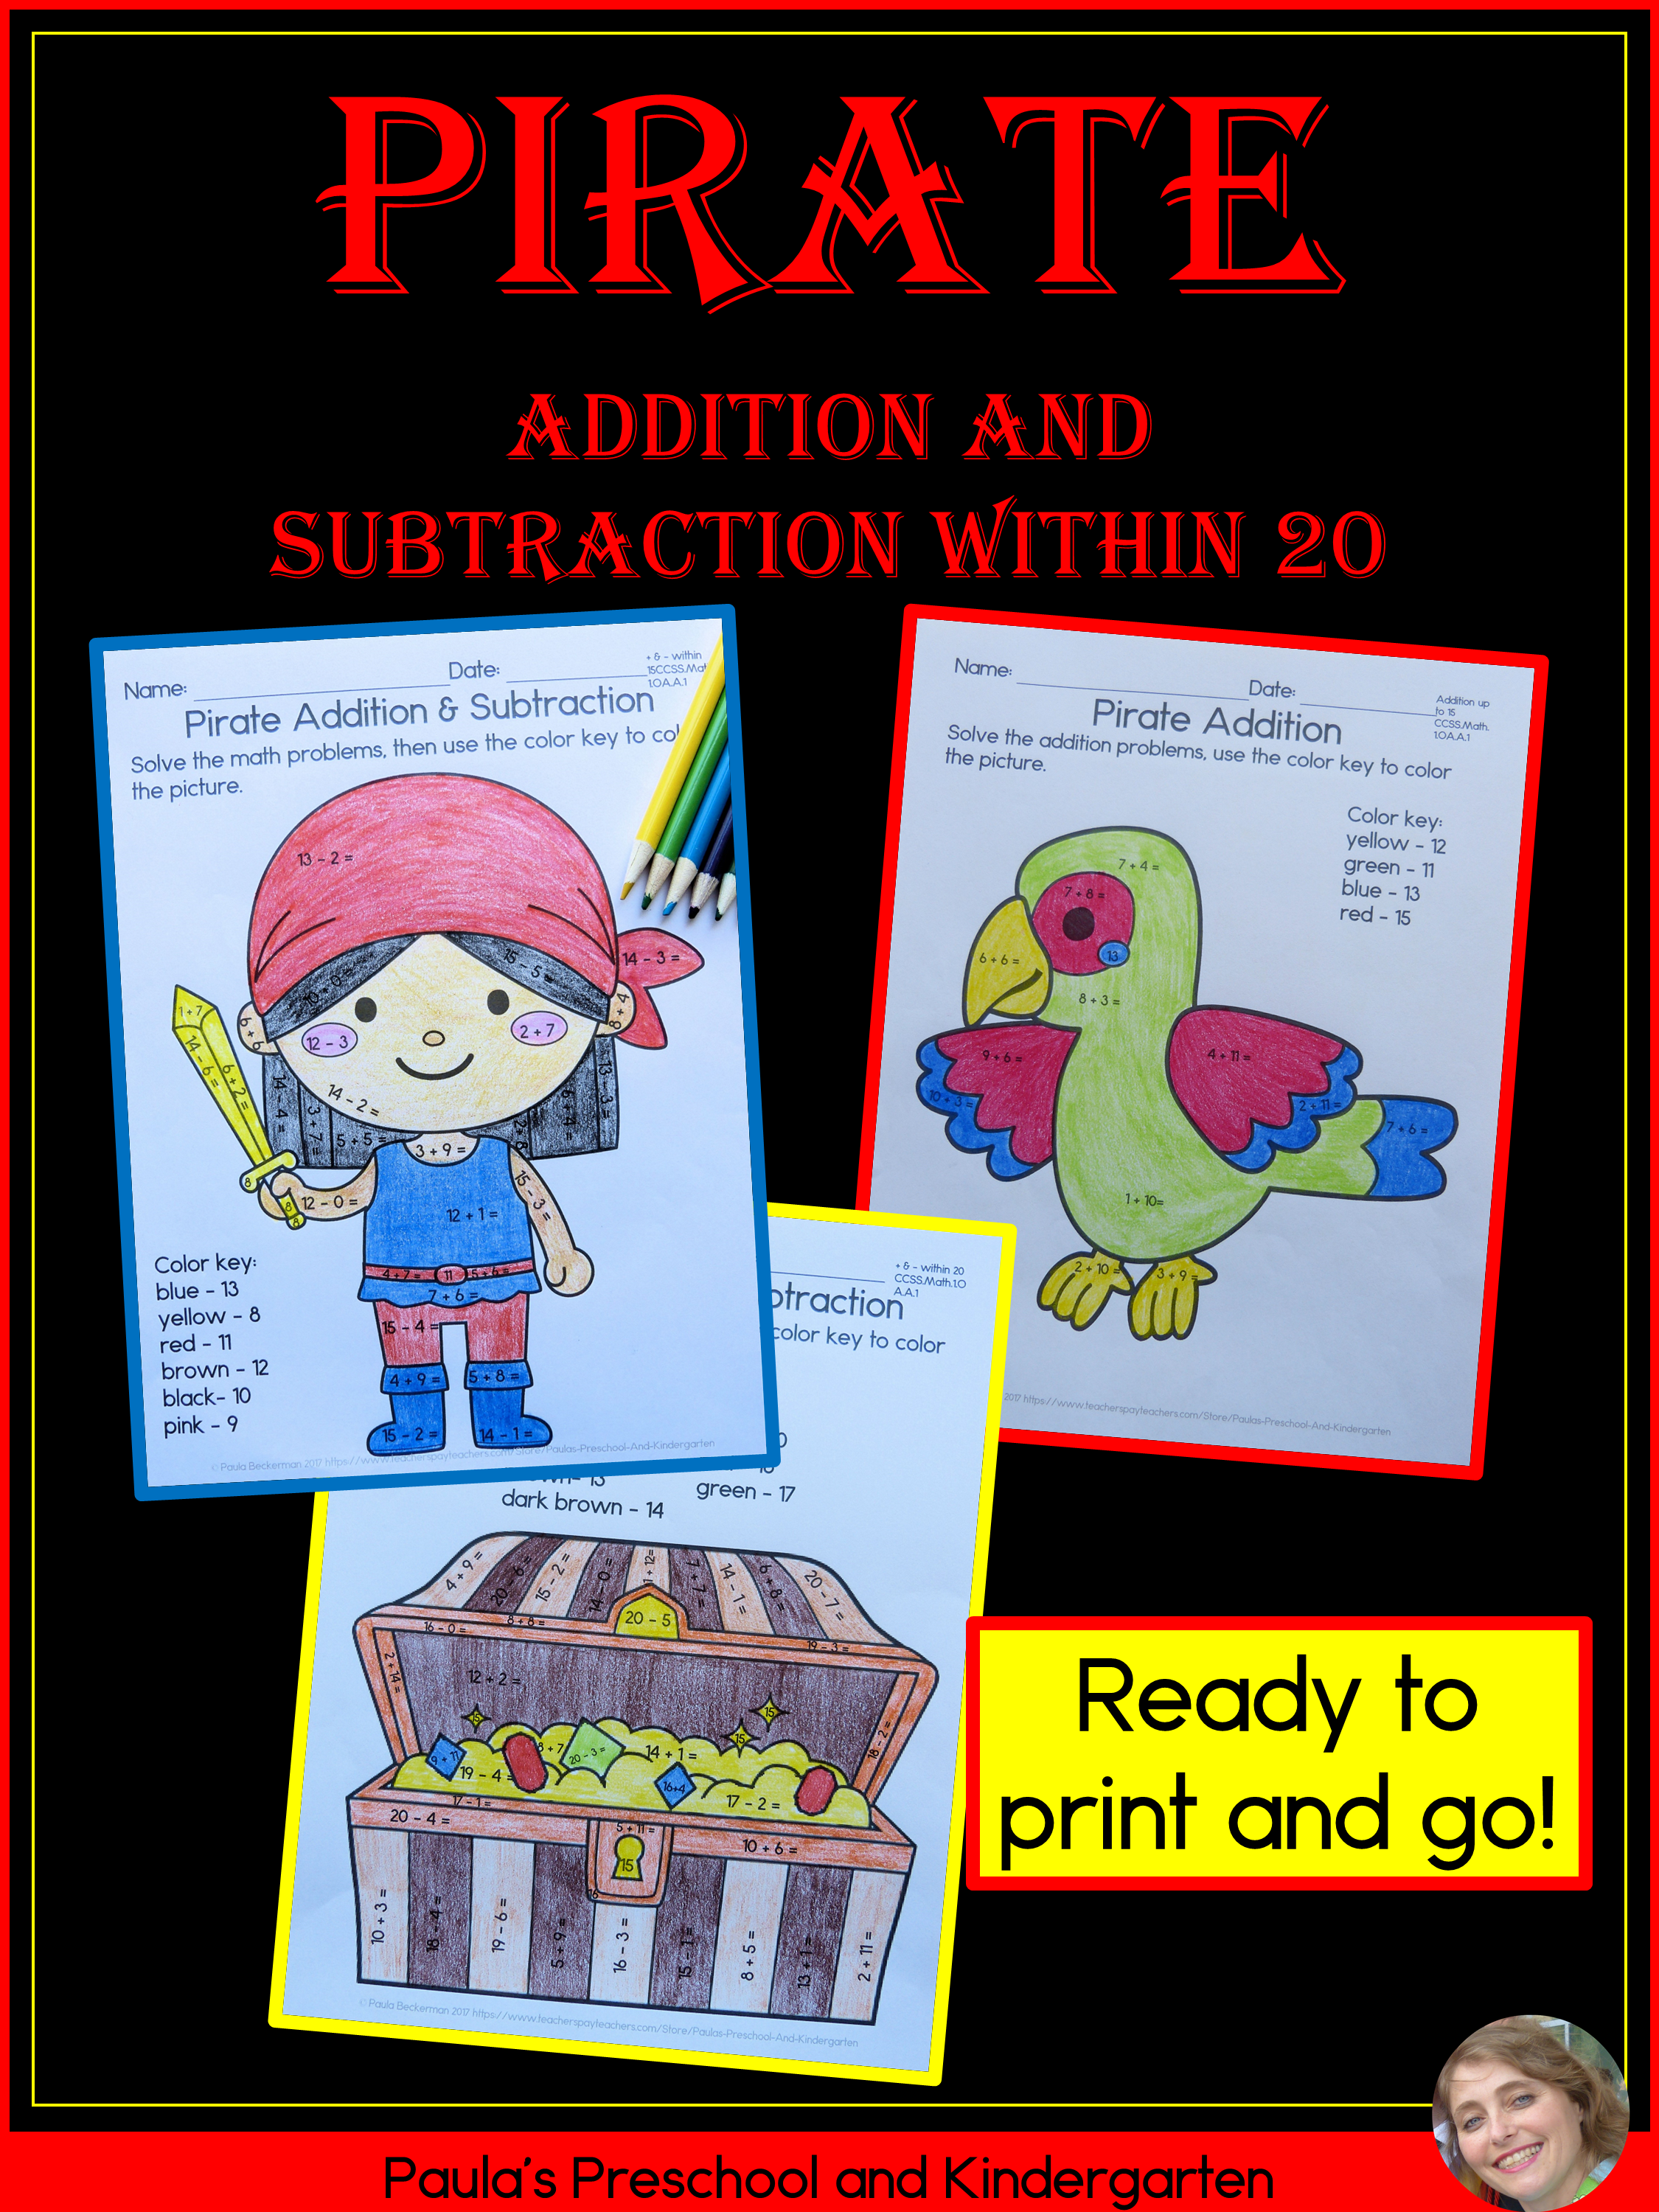 Addition And Subtraction Within 20 Pirate Theme